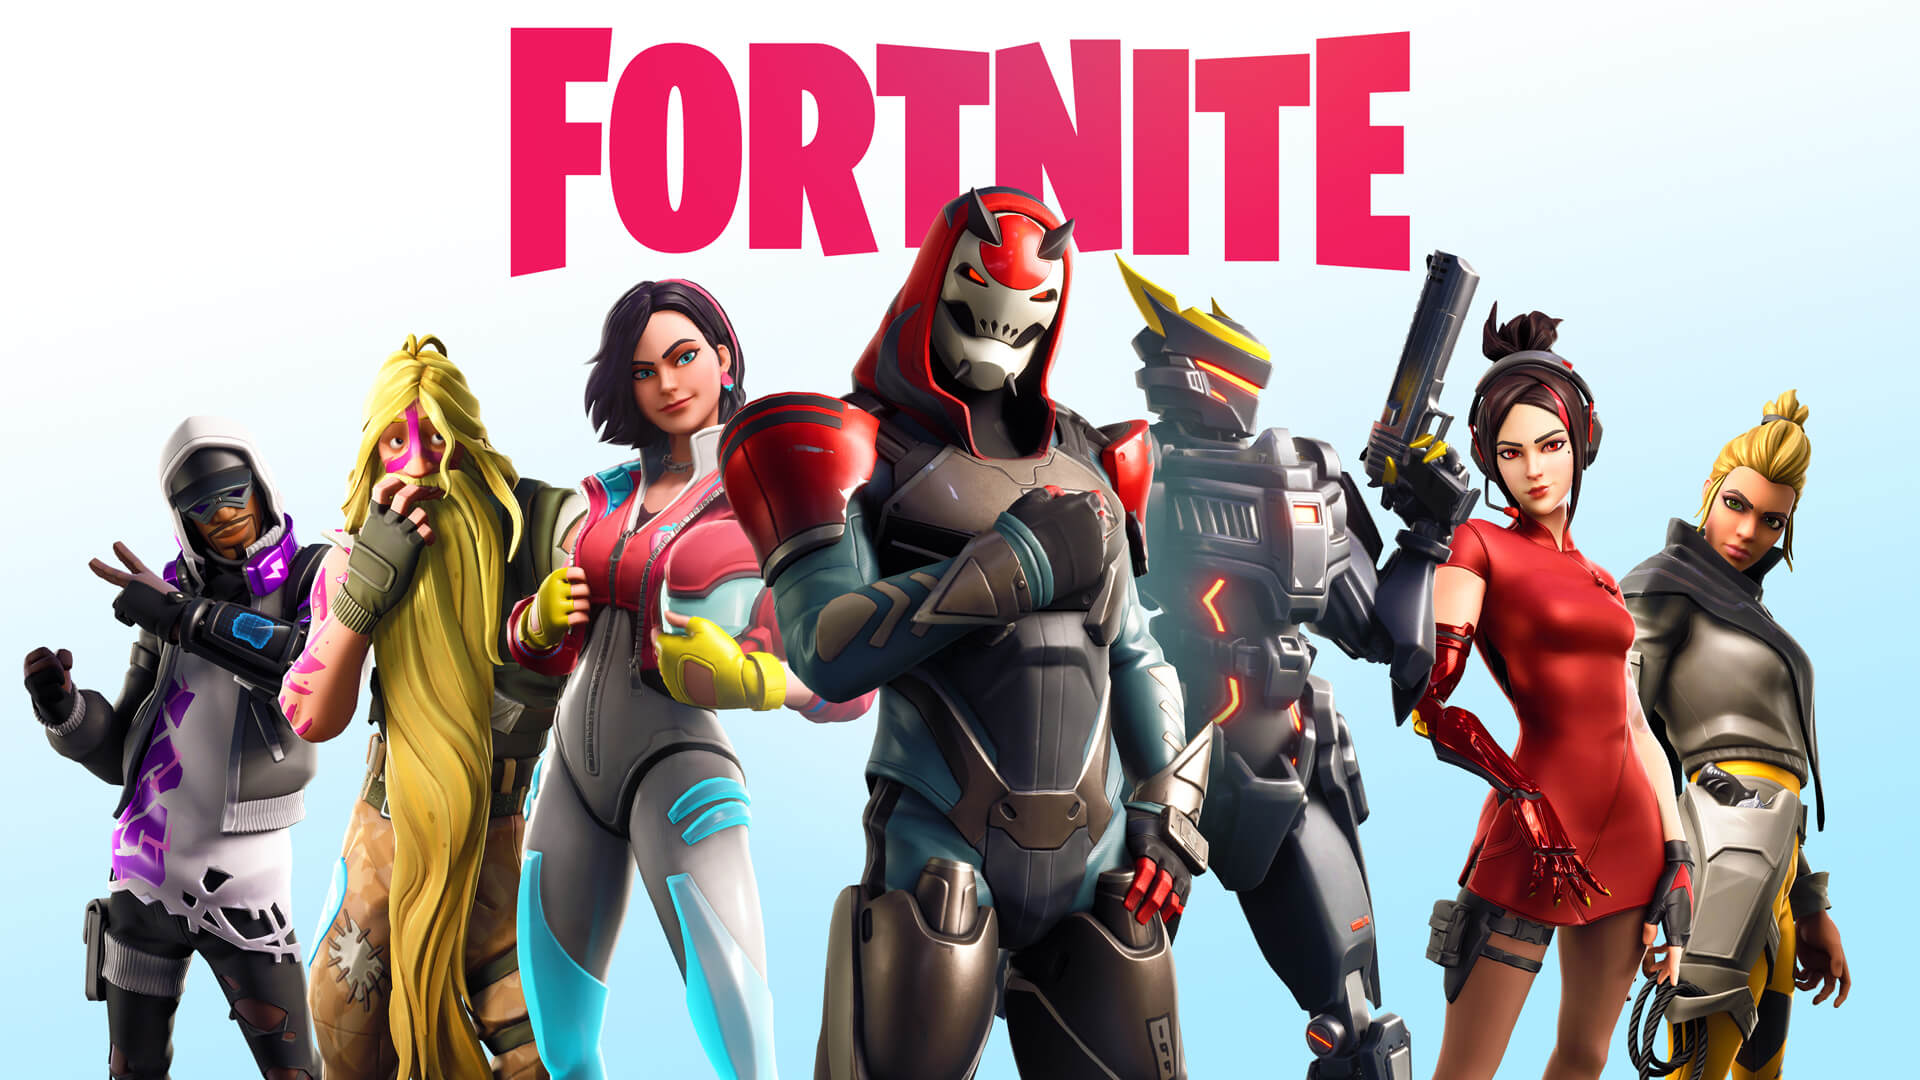 Fortnite 2020 Crack With License Key Free Full Download